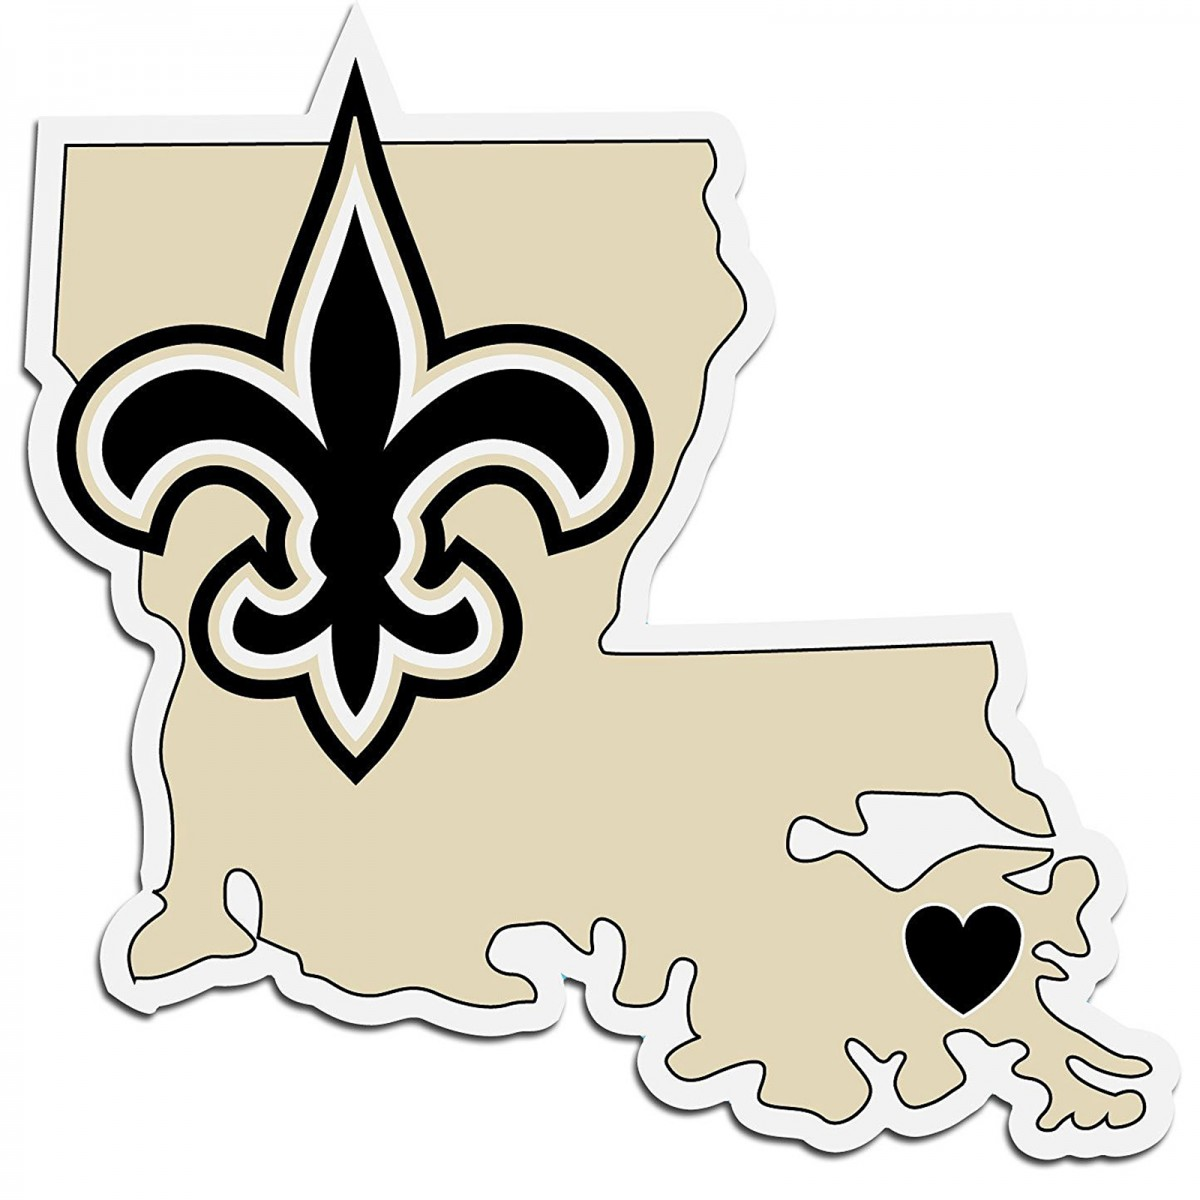 New Orleans Saints Clipart at GetDrawings.com | Free for personal ...